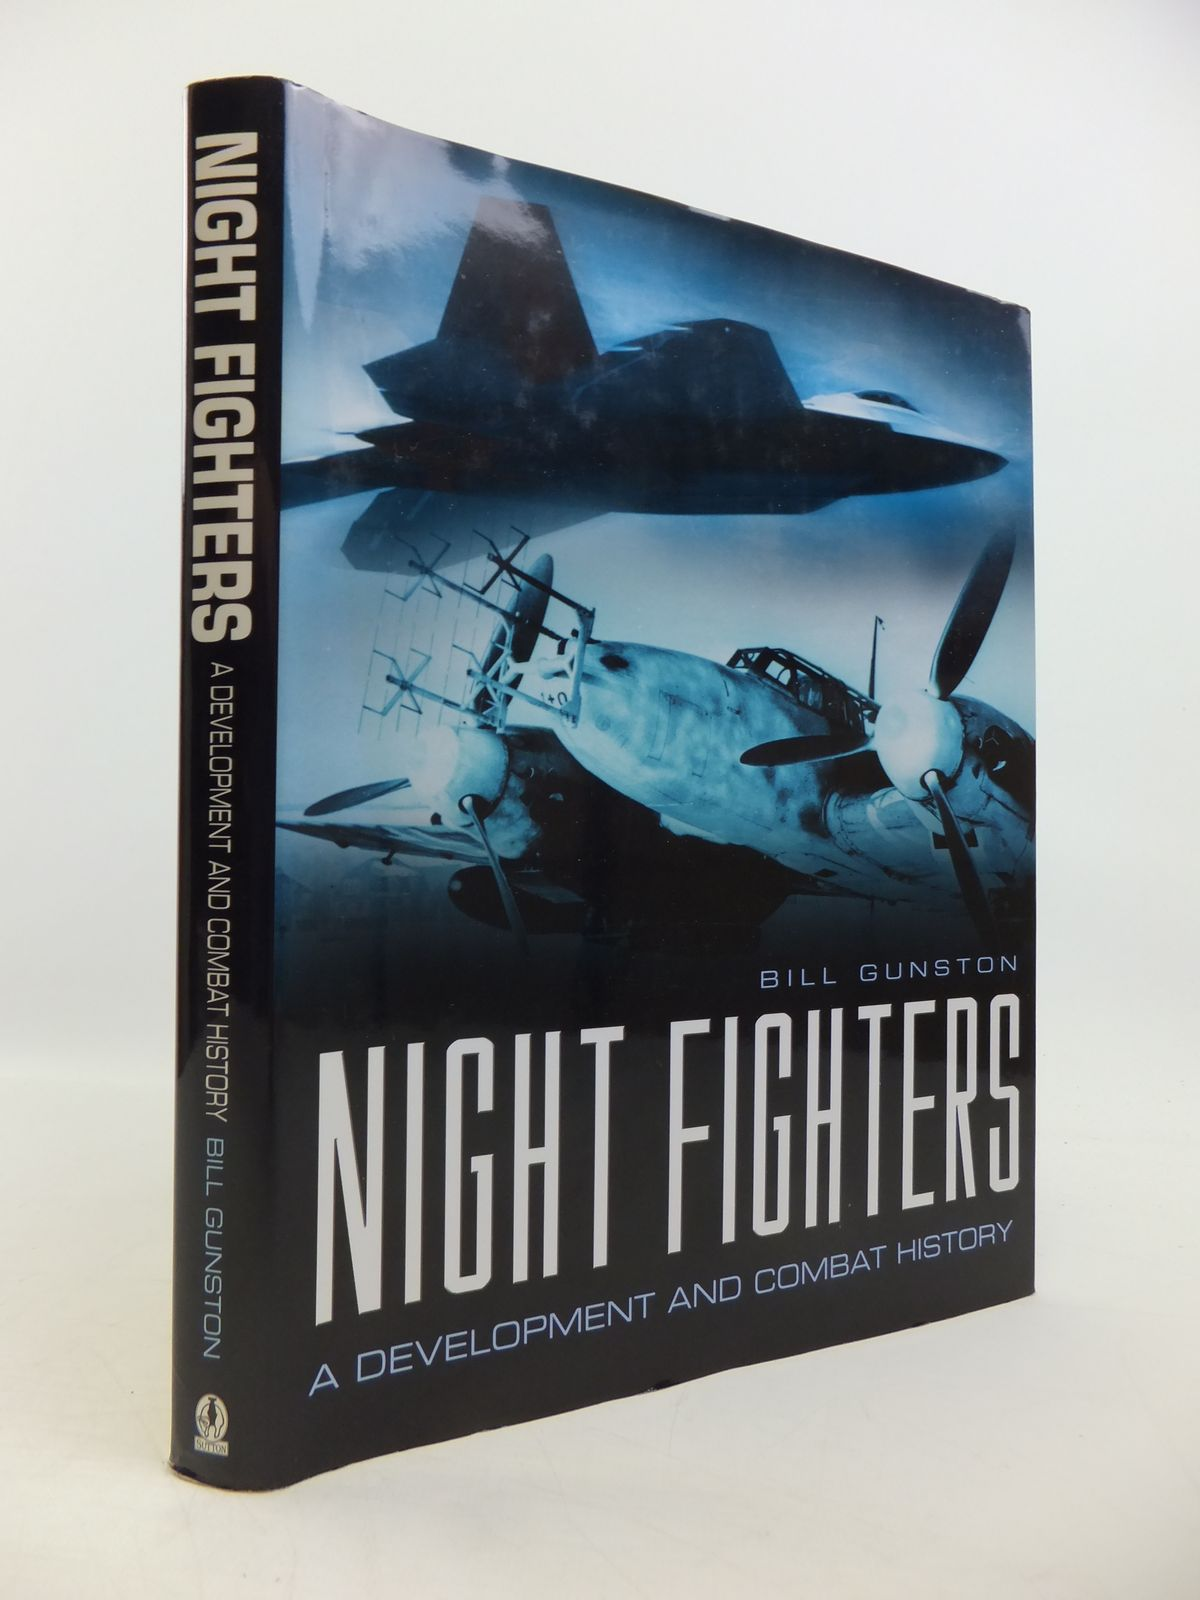 Photo of NIGHT FIGHTERS A DEVELOPMENT AND COMBAT HISTORY written by Gunston, Bill<br />Cunningham, John published by Sutton Publishing (STOCK CODE: 1811493)  for sale by Stella & Rose's Books